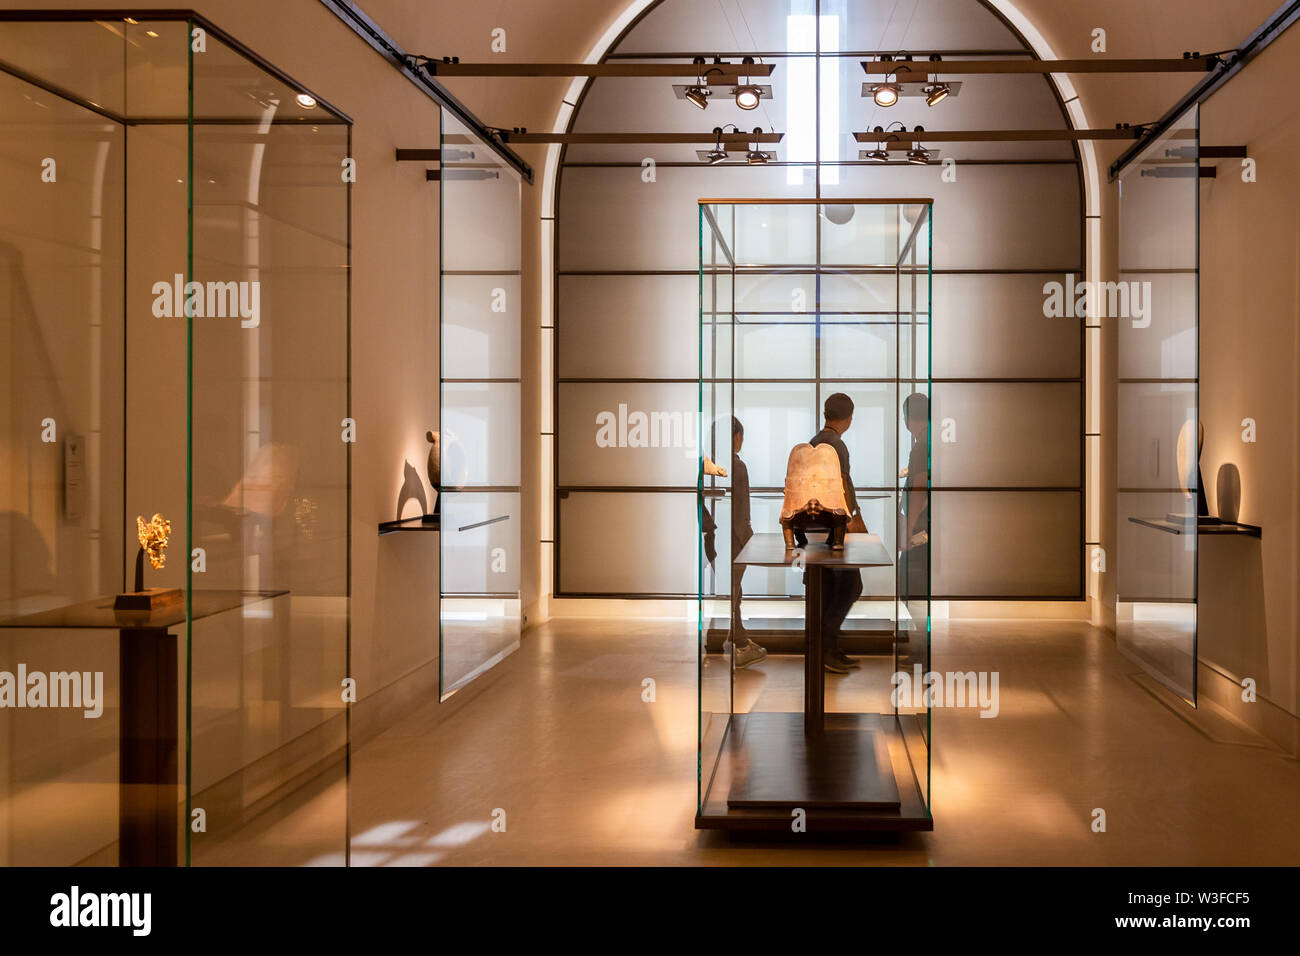 Paris, France - September 30, 2018: Tourist walking inside a glass room showing ancient items inside Louvre museum. - Stock Image